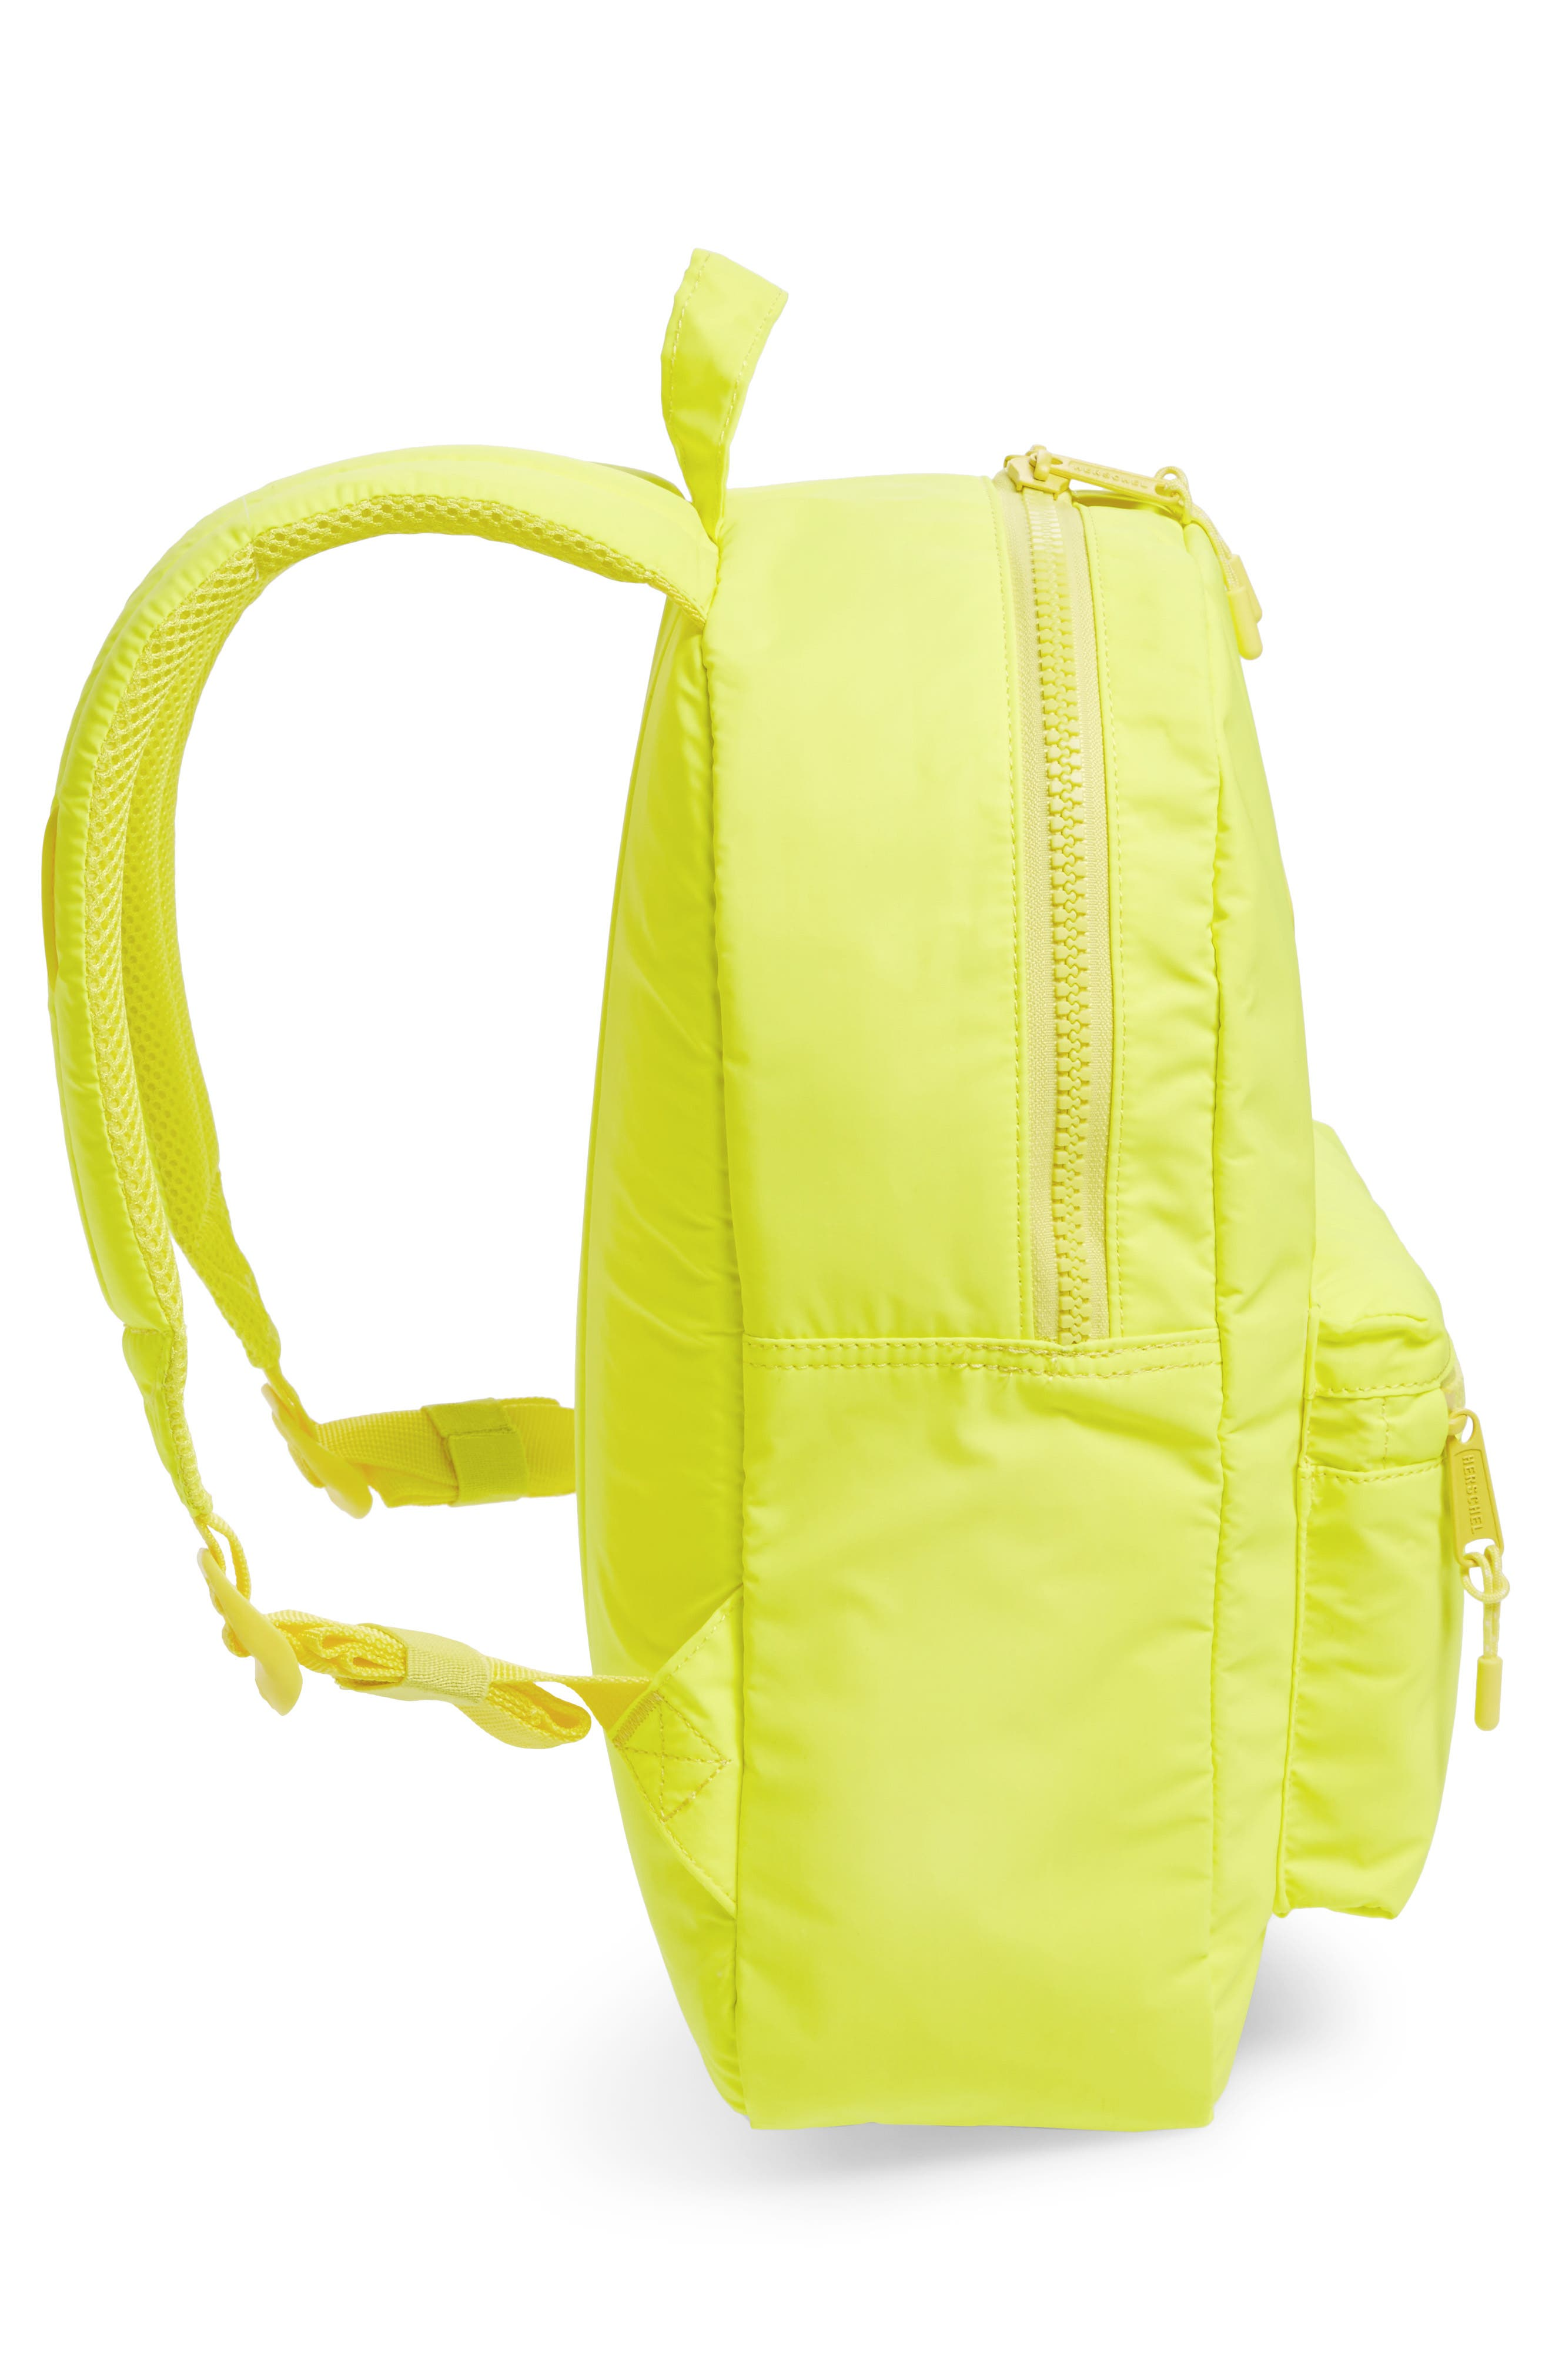 Heritage Backpack,                             Alternate thumbnail 3, color,                             Neon Yellow Reflective Rubber